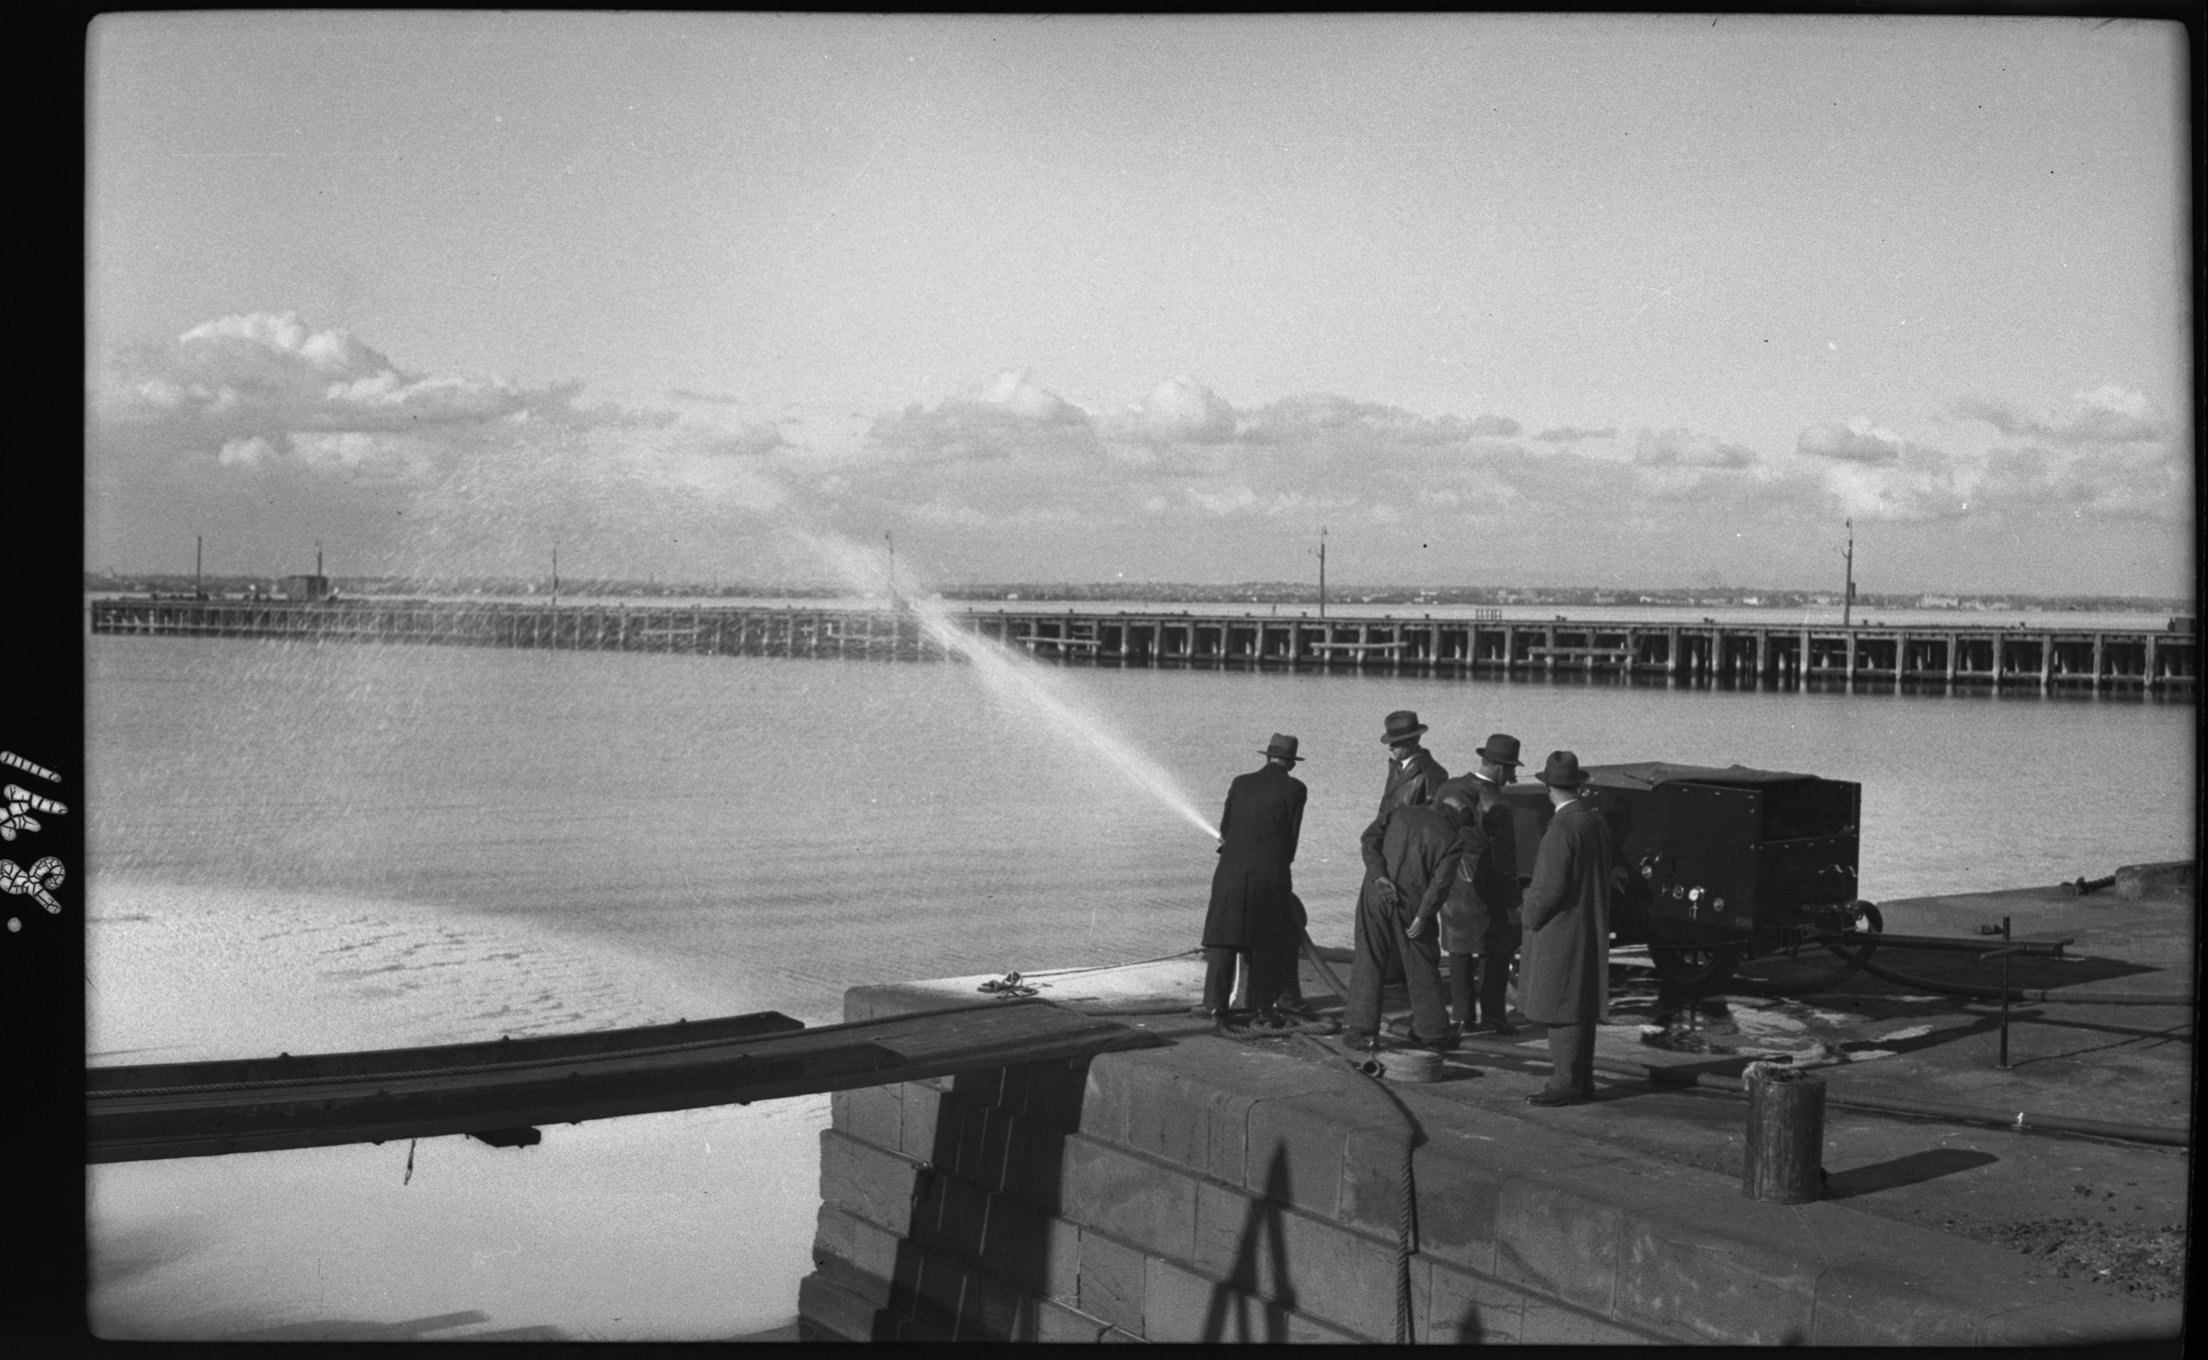 black and white image of men on dock using a large hose